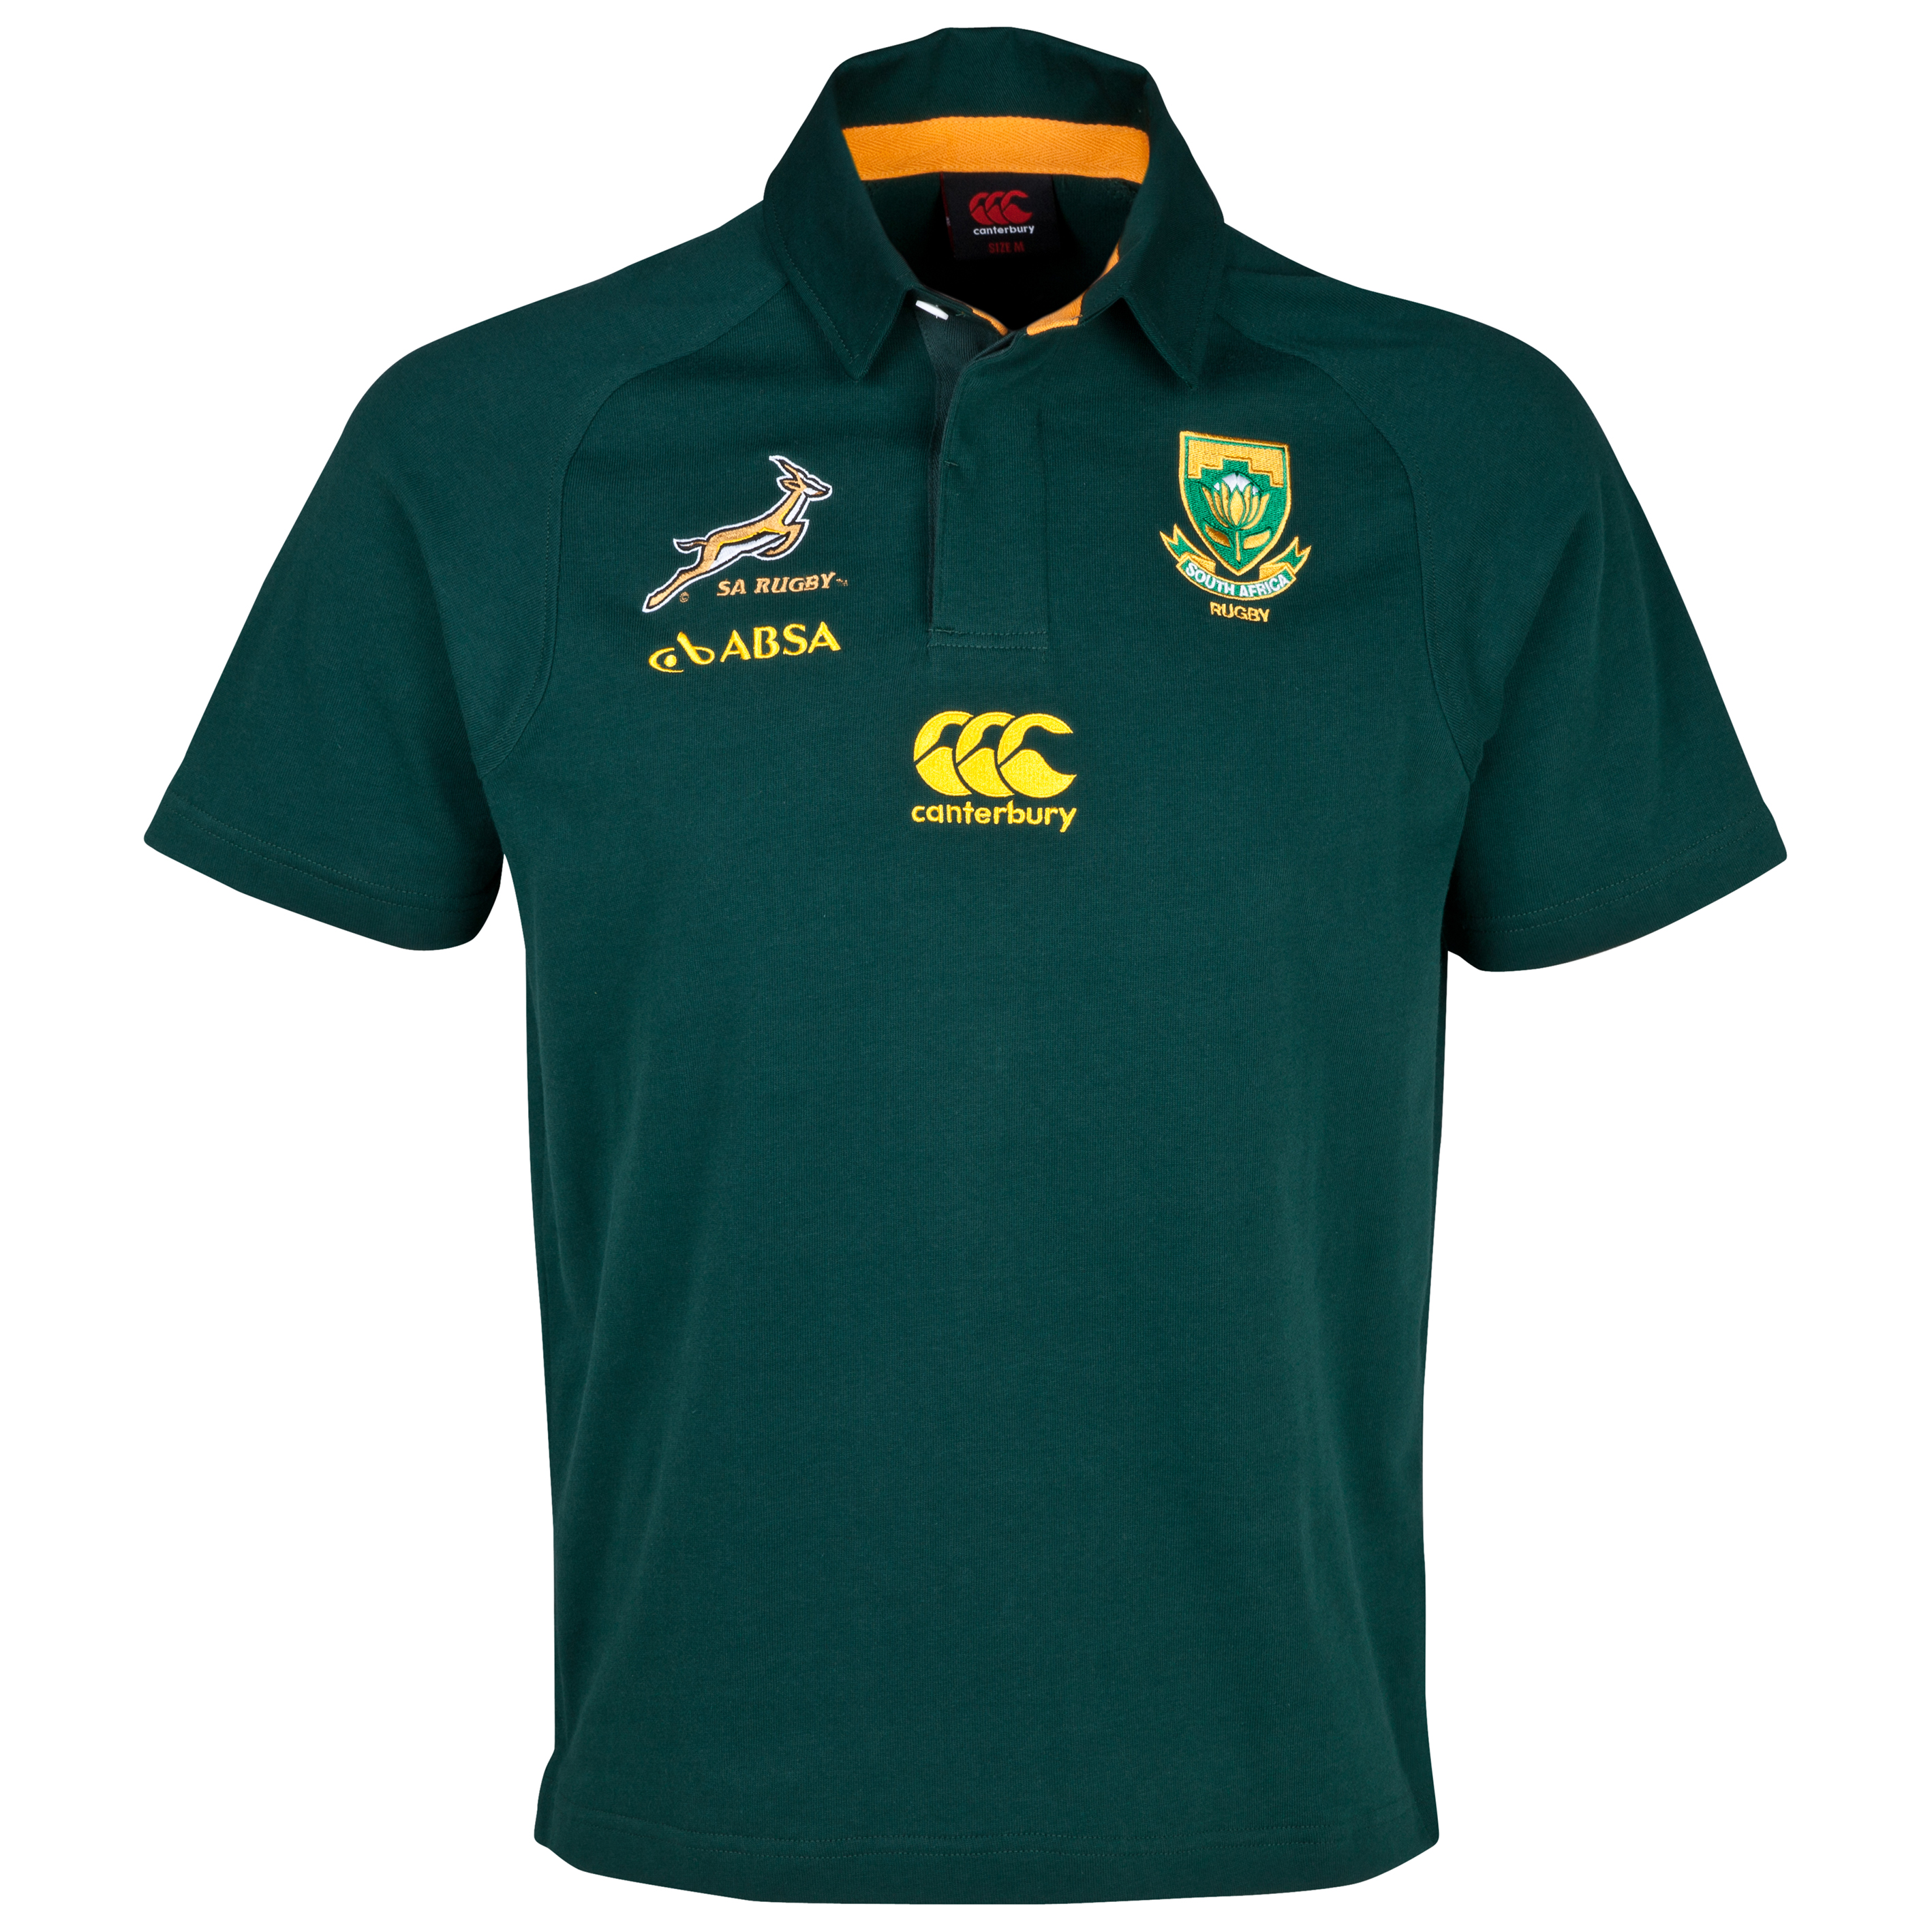 South Africa Springboks Home Rugby Classic Shirt 2013/14